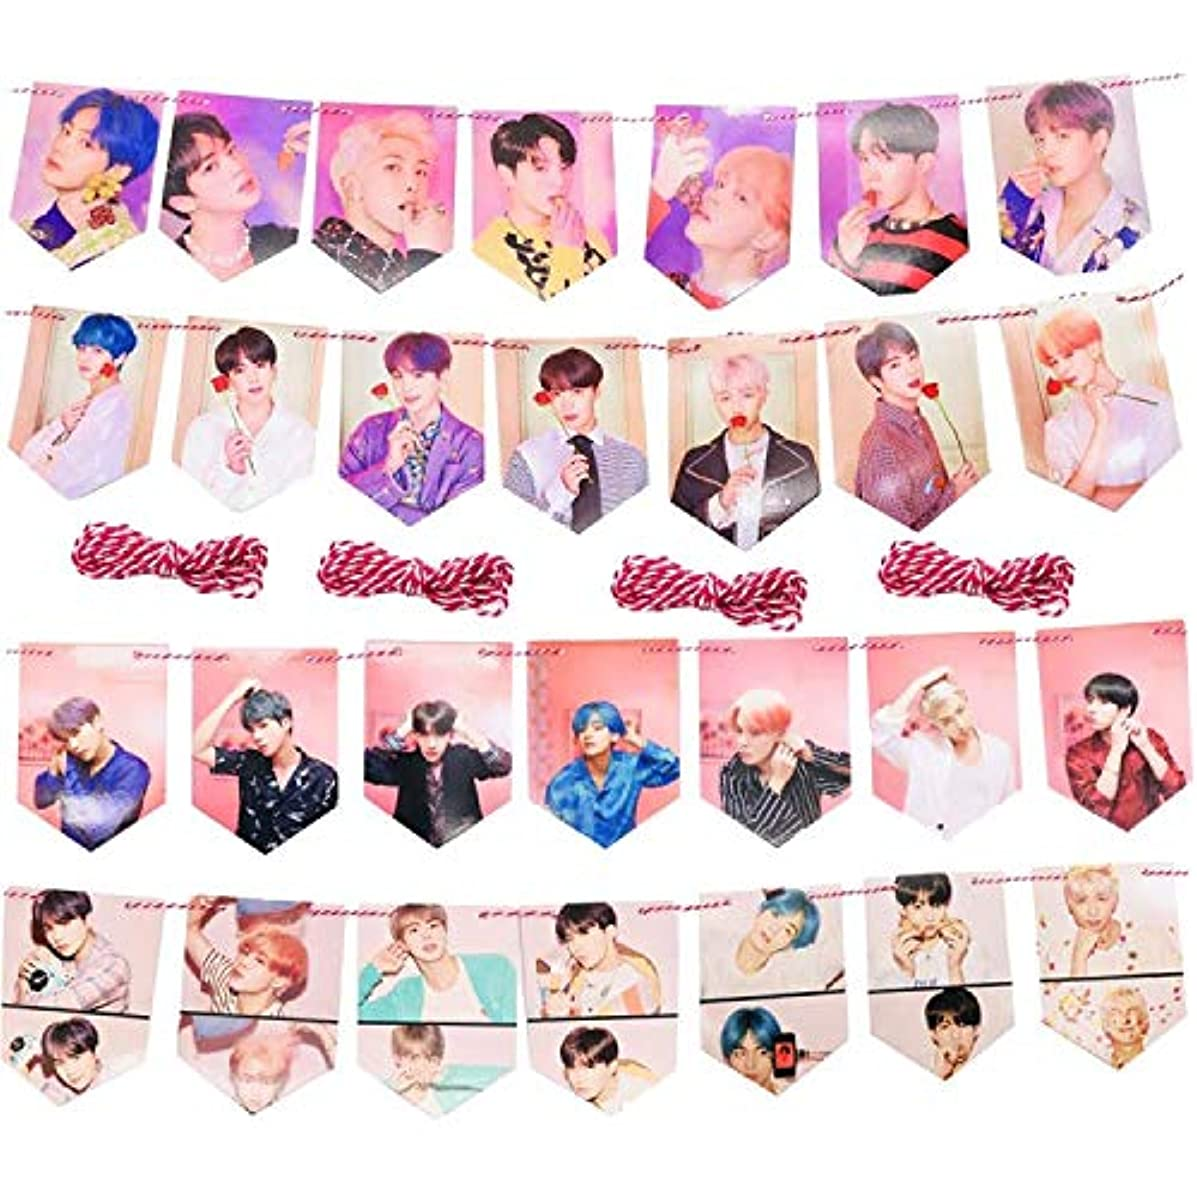 28 PCS Kpop Bingtan Boys Hanging Banner, 4 x 2 Meter BTS Flag Garland for Home Decor Party Decoration and A.R.M.Y